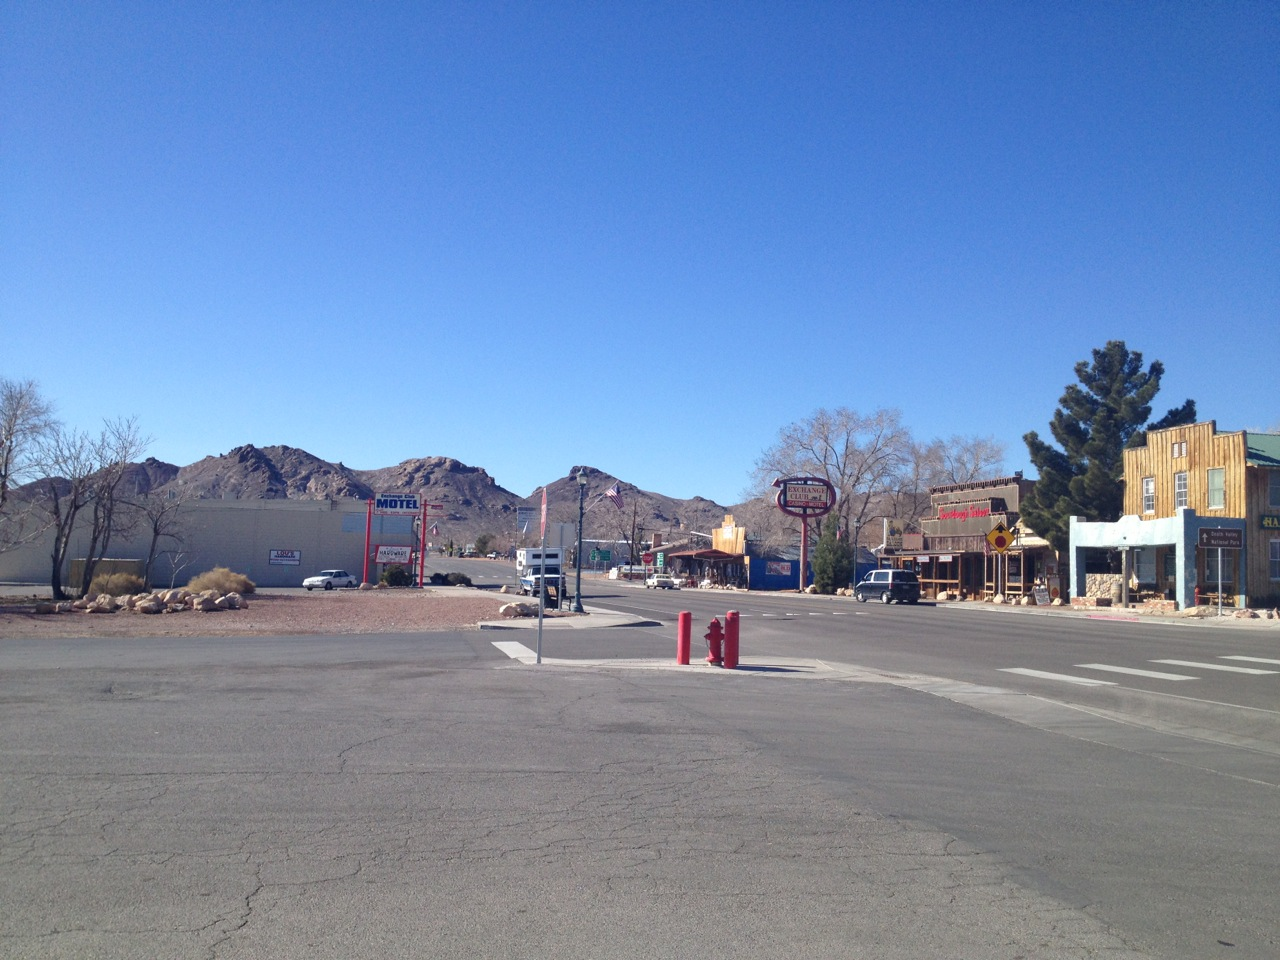 View of Beatty, NV, from the gas station.